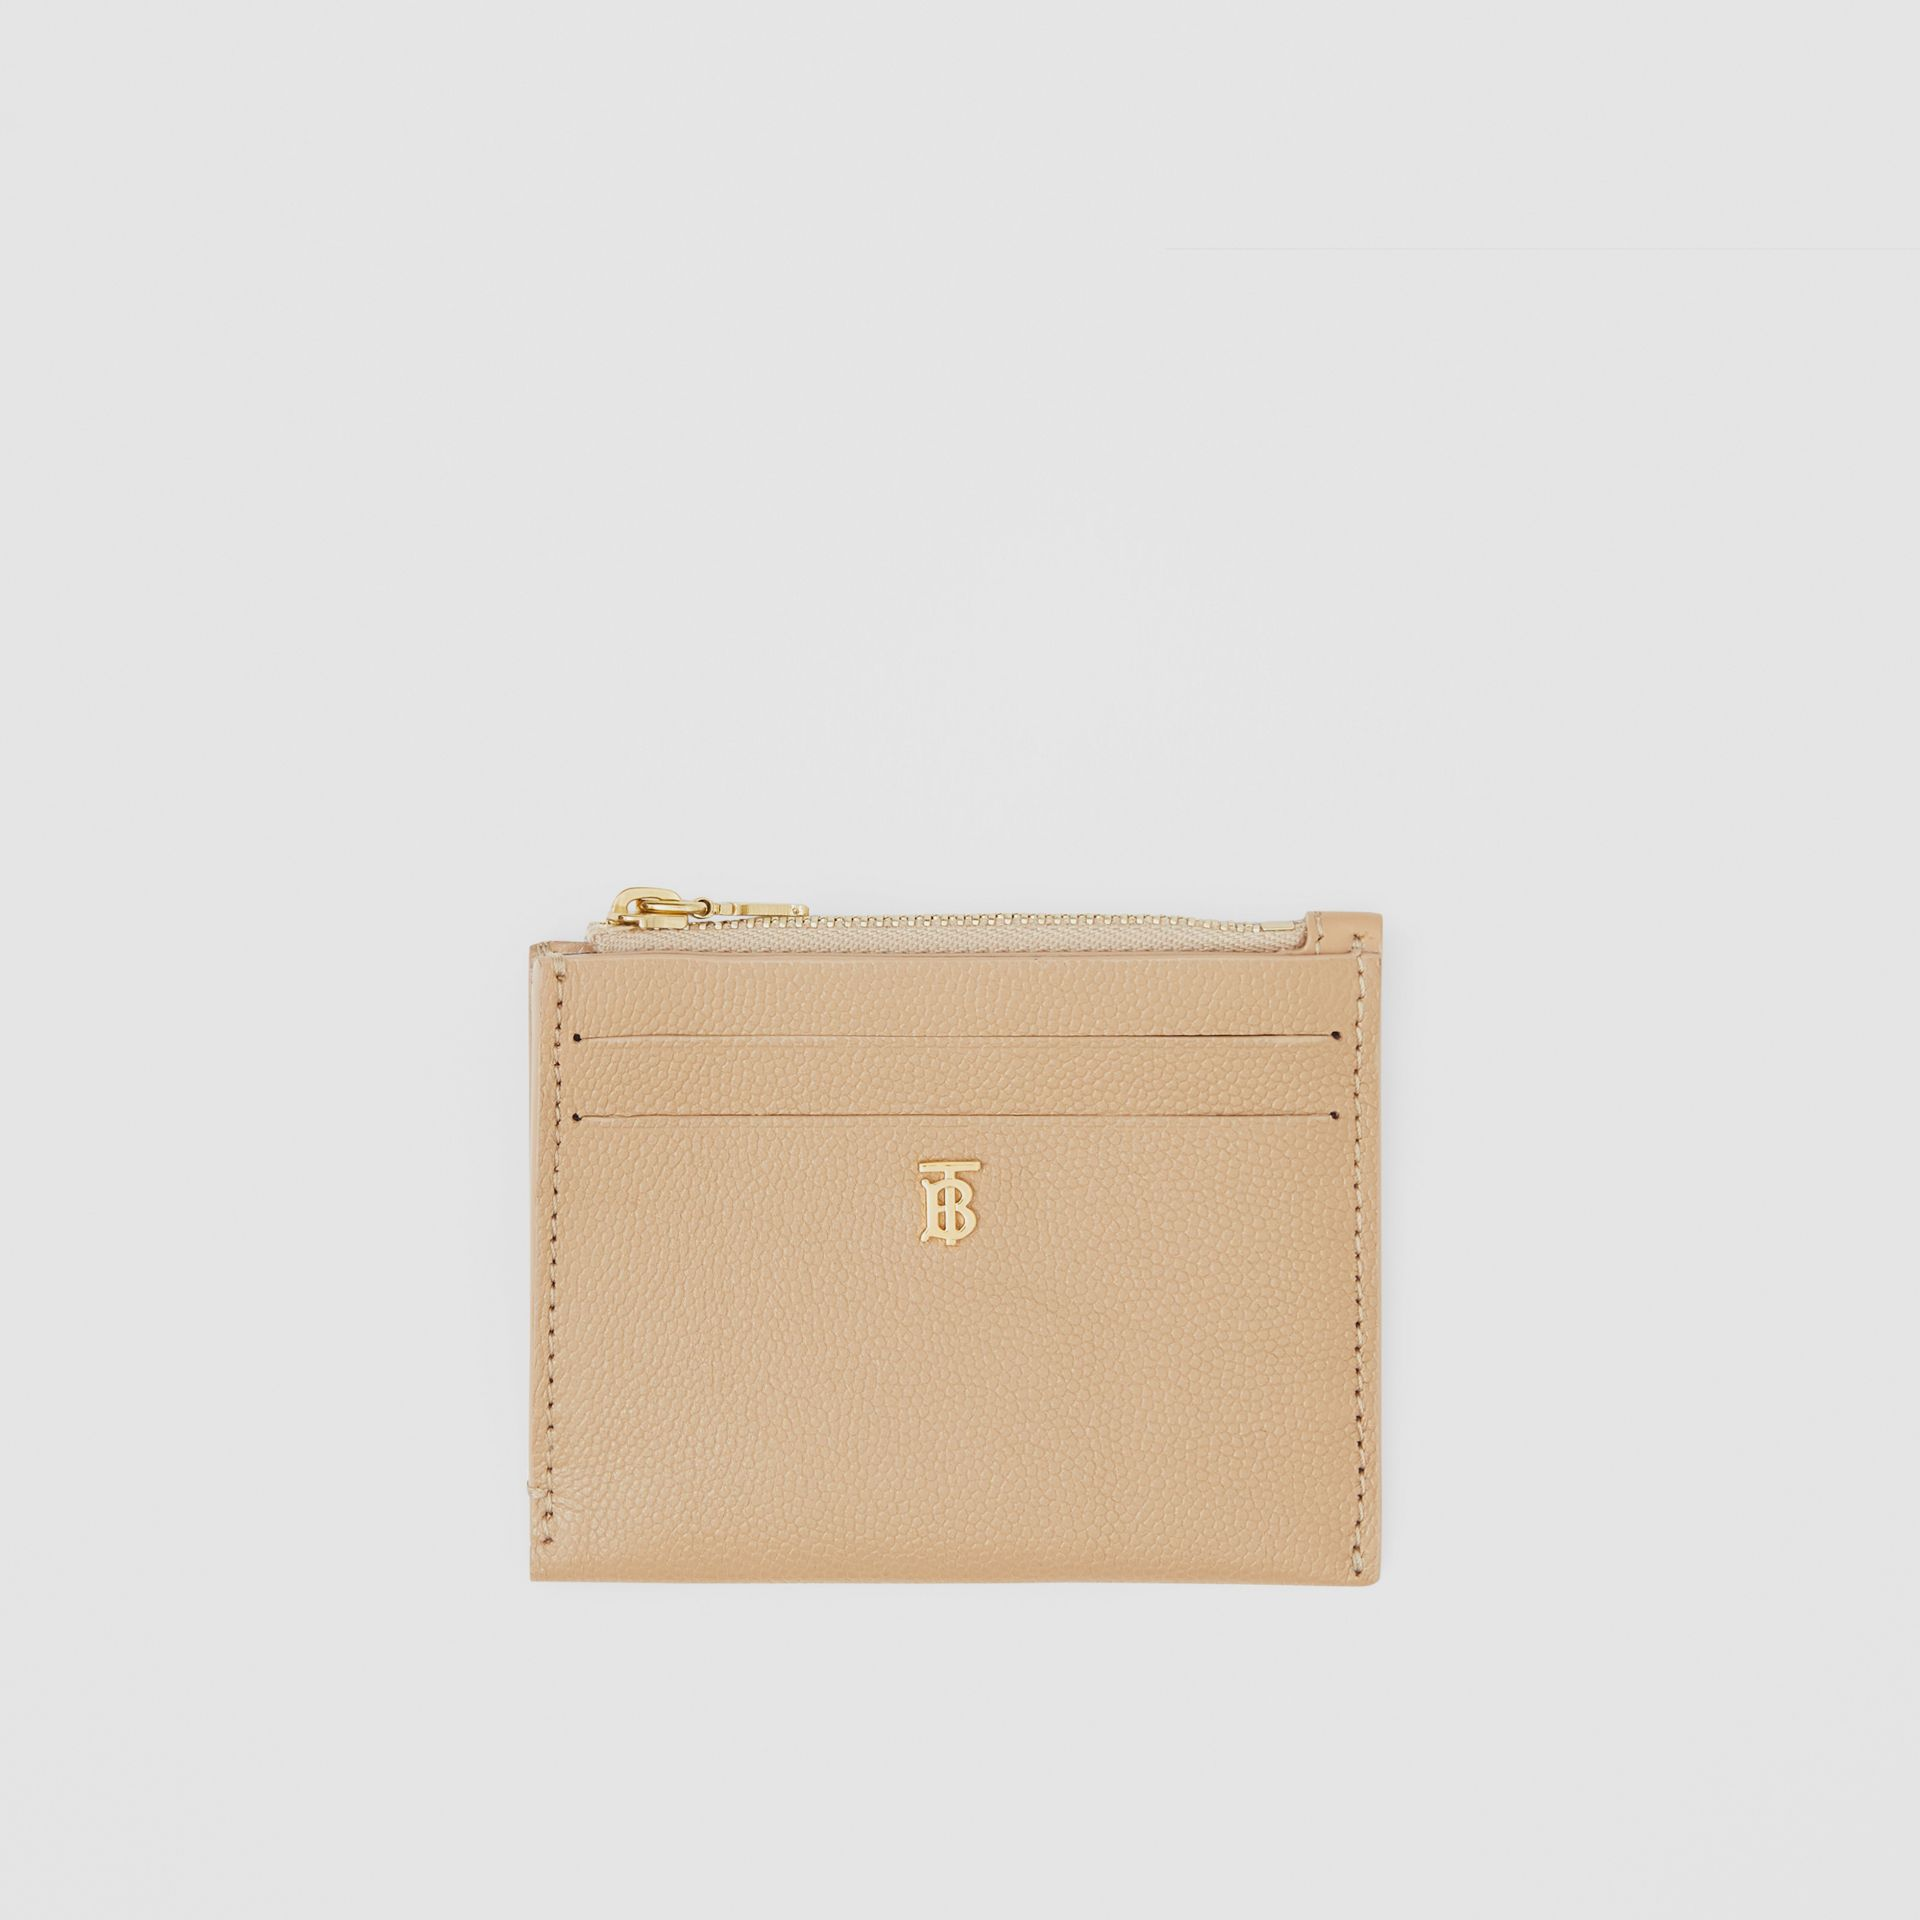 Monogram Motif Grainy Leather Zip Card Case in Archive Beige - Women | Burberry Canada - gallery image 0